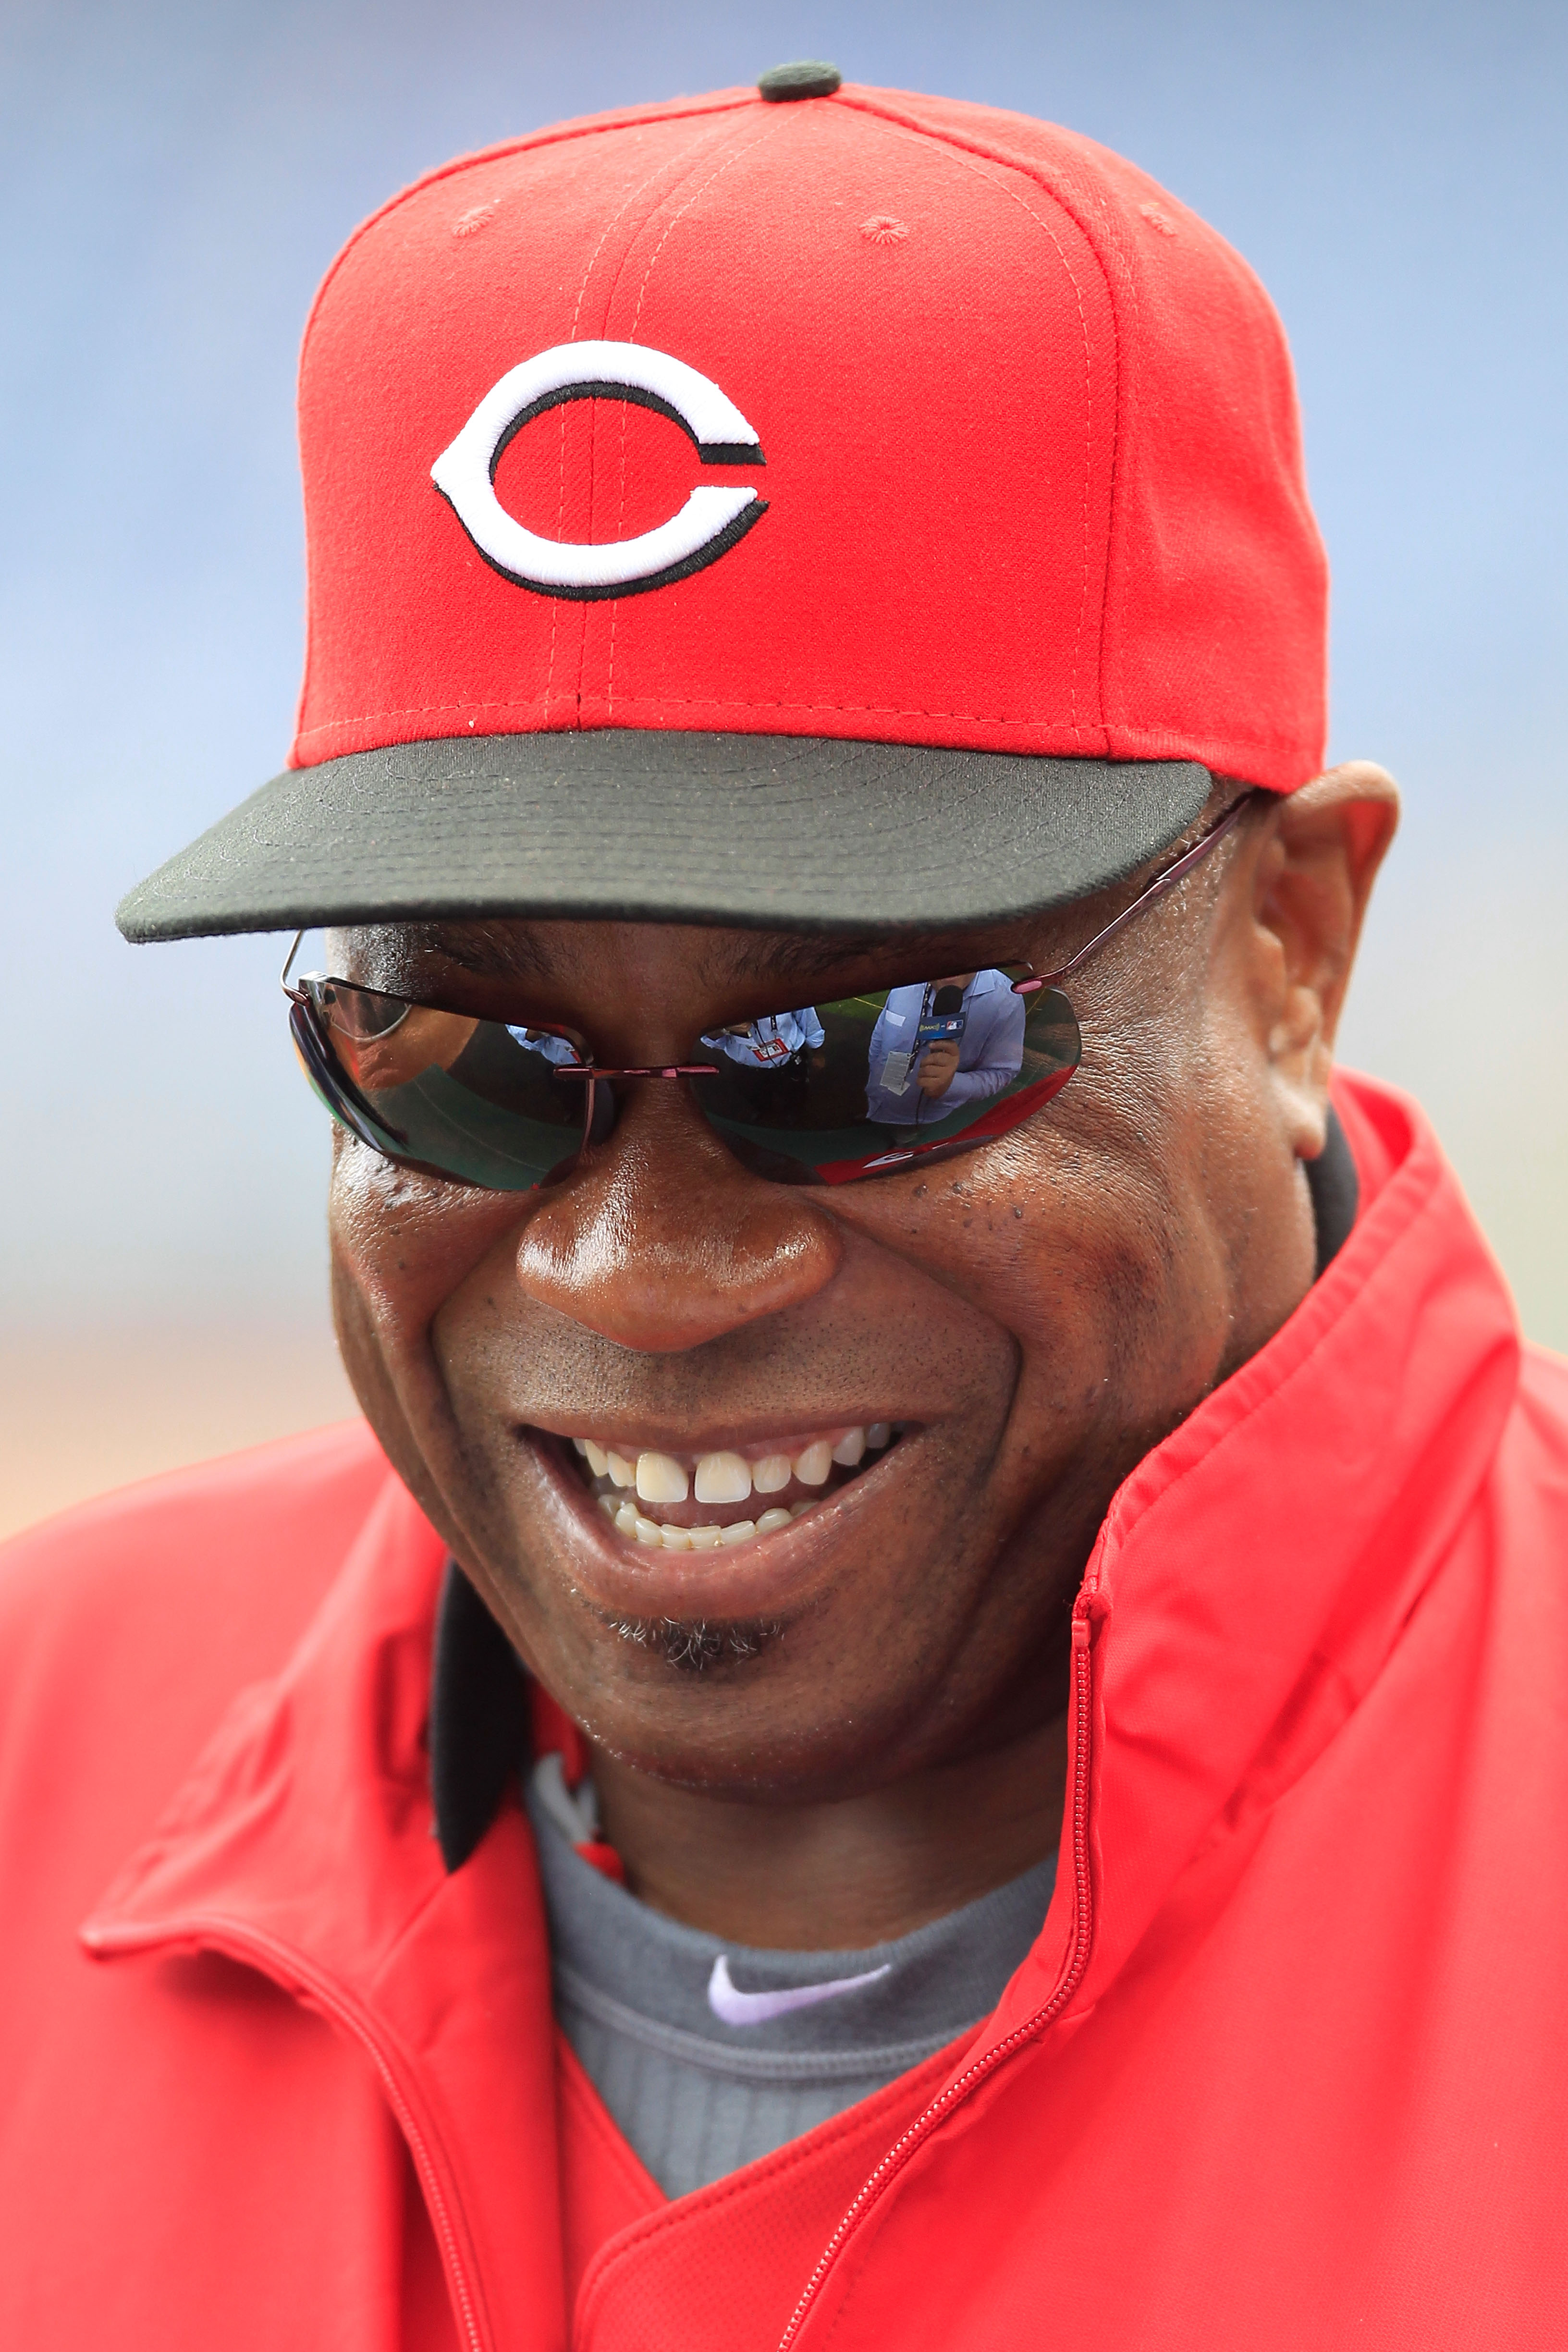 PHILADELPHIA - OCTOBER 06:  Manager Dusty Baker #12 of the Cincinnati Reds watches batting practice before Game 1 of the NLDS against the Philadelphia Phillies at Citizens Bank Park on October 6, 2010 in Philadelphia, Pennsylvania.  (Photo by Chris Trotma